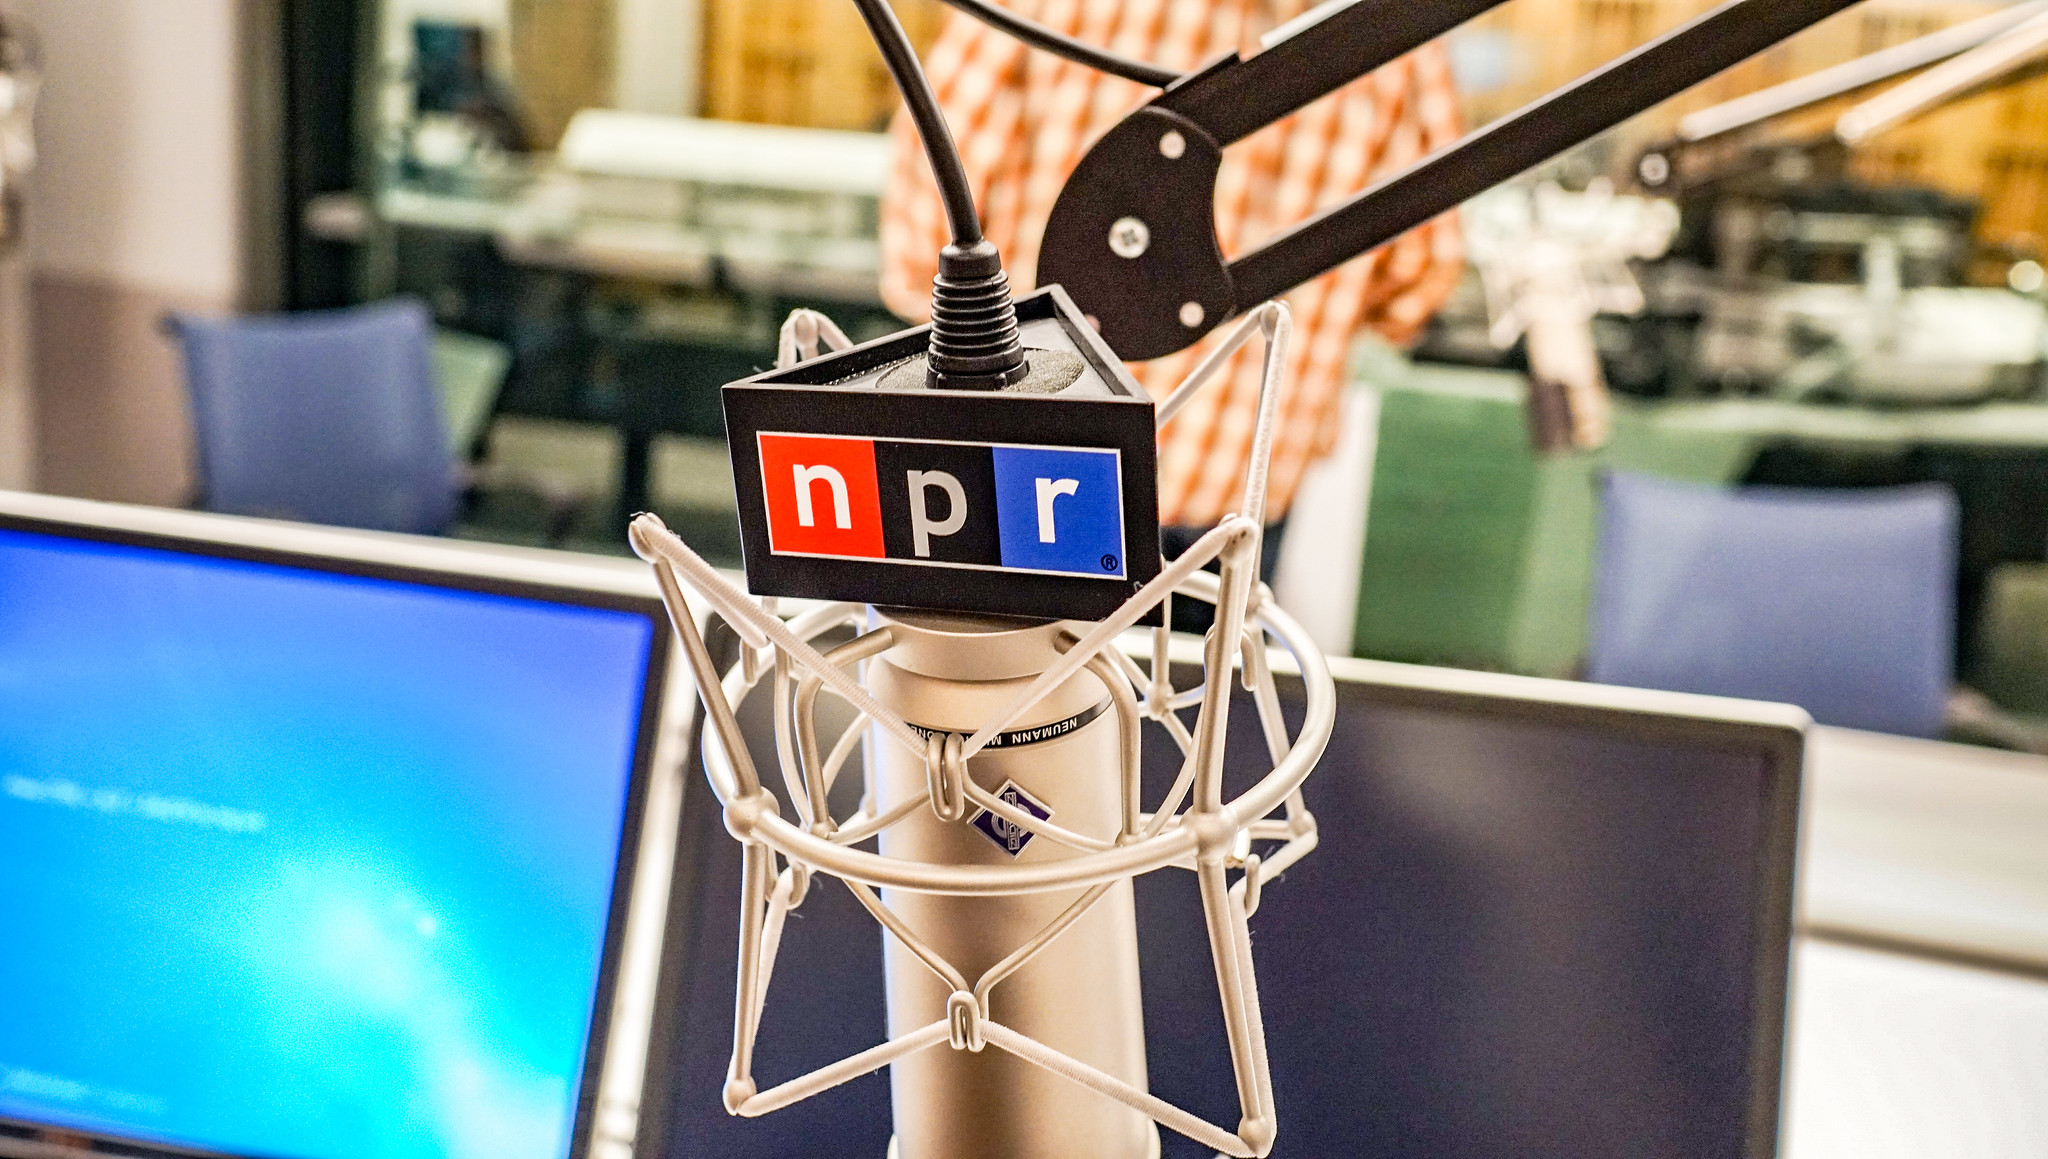 A mic with the NPR (National Public Radio) flag at their headquarters in Washington DC.